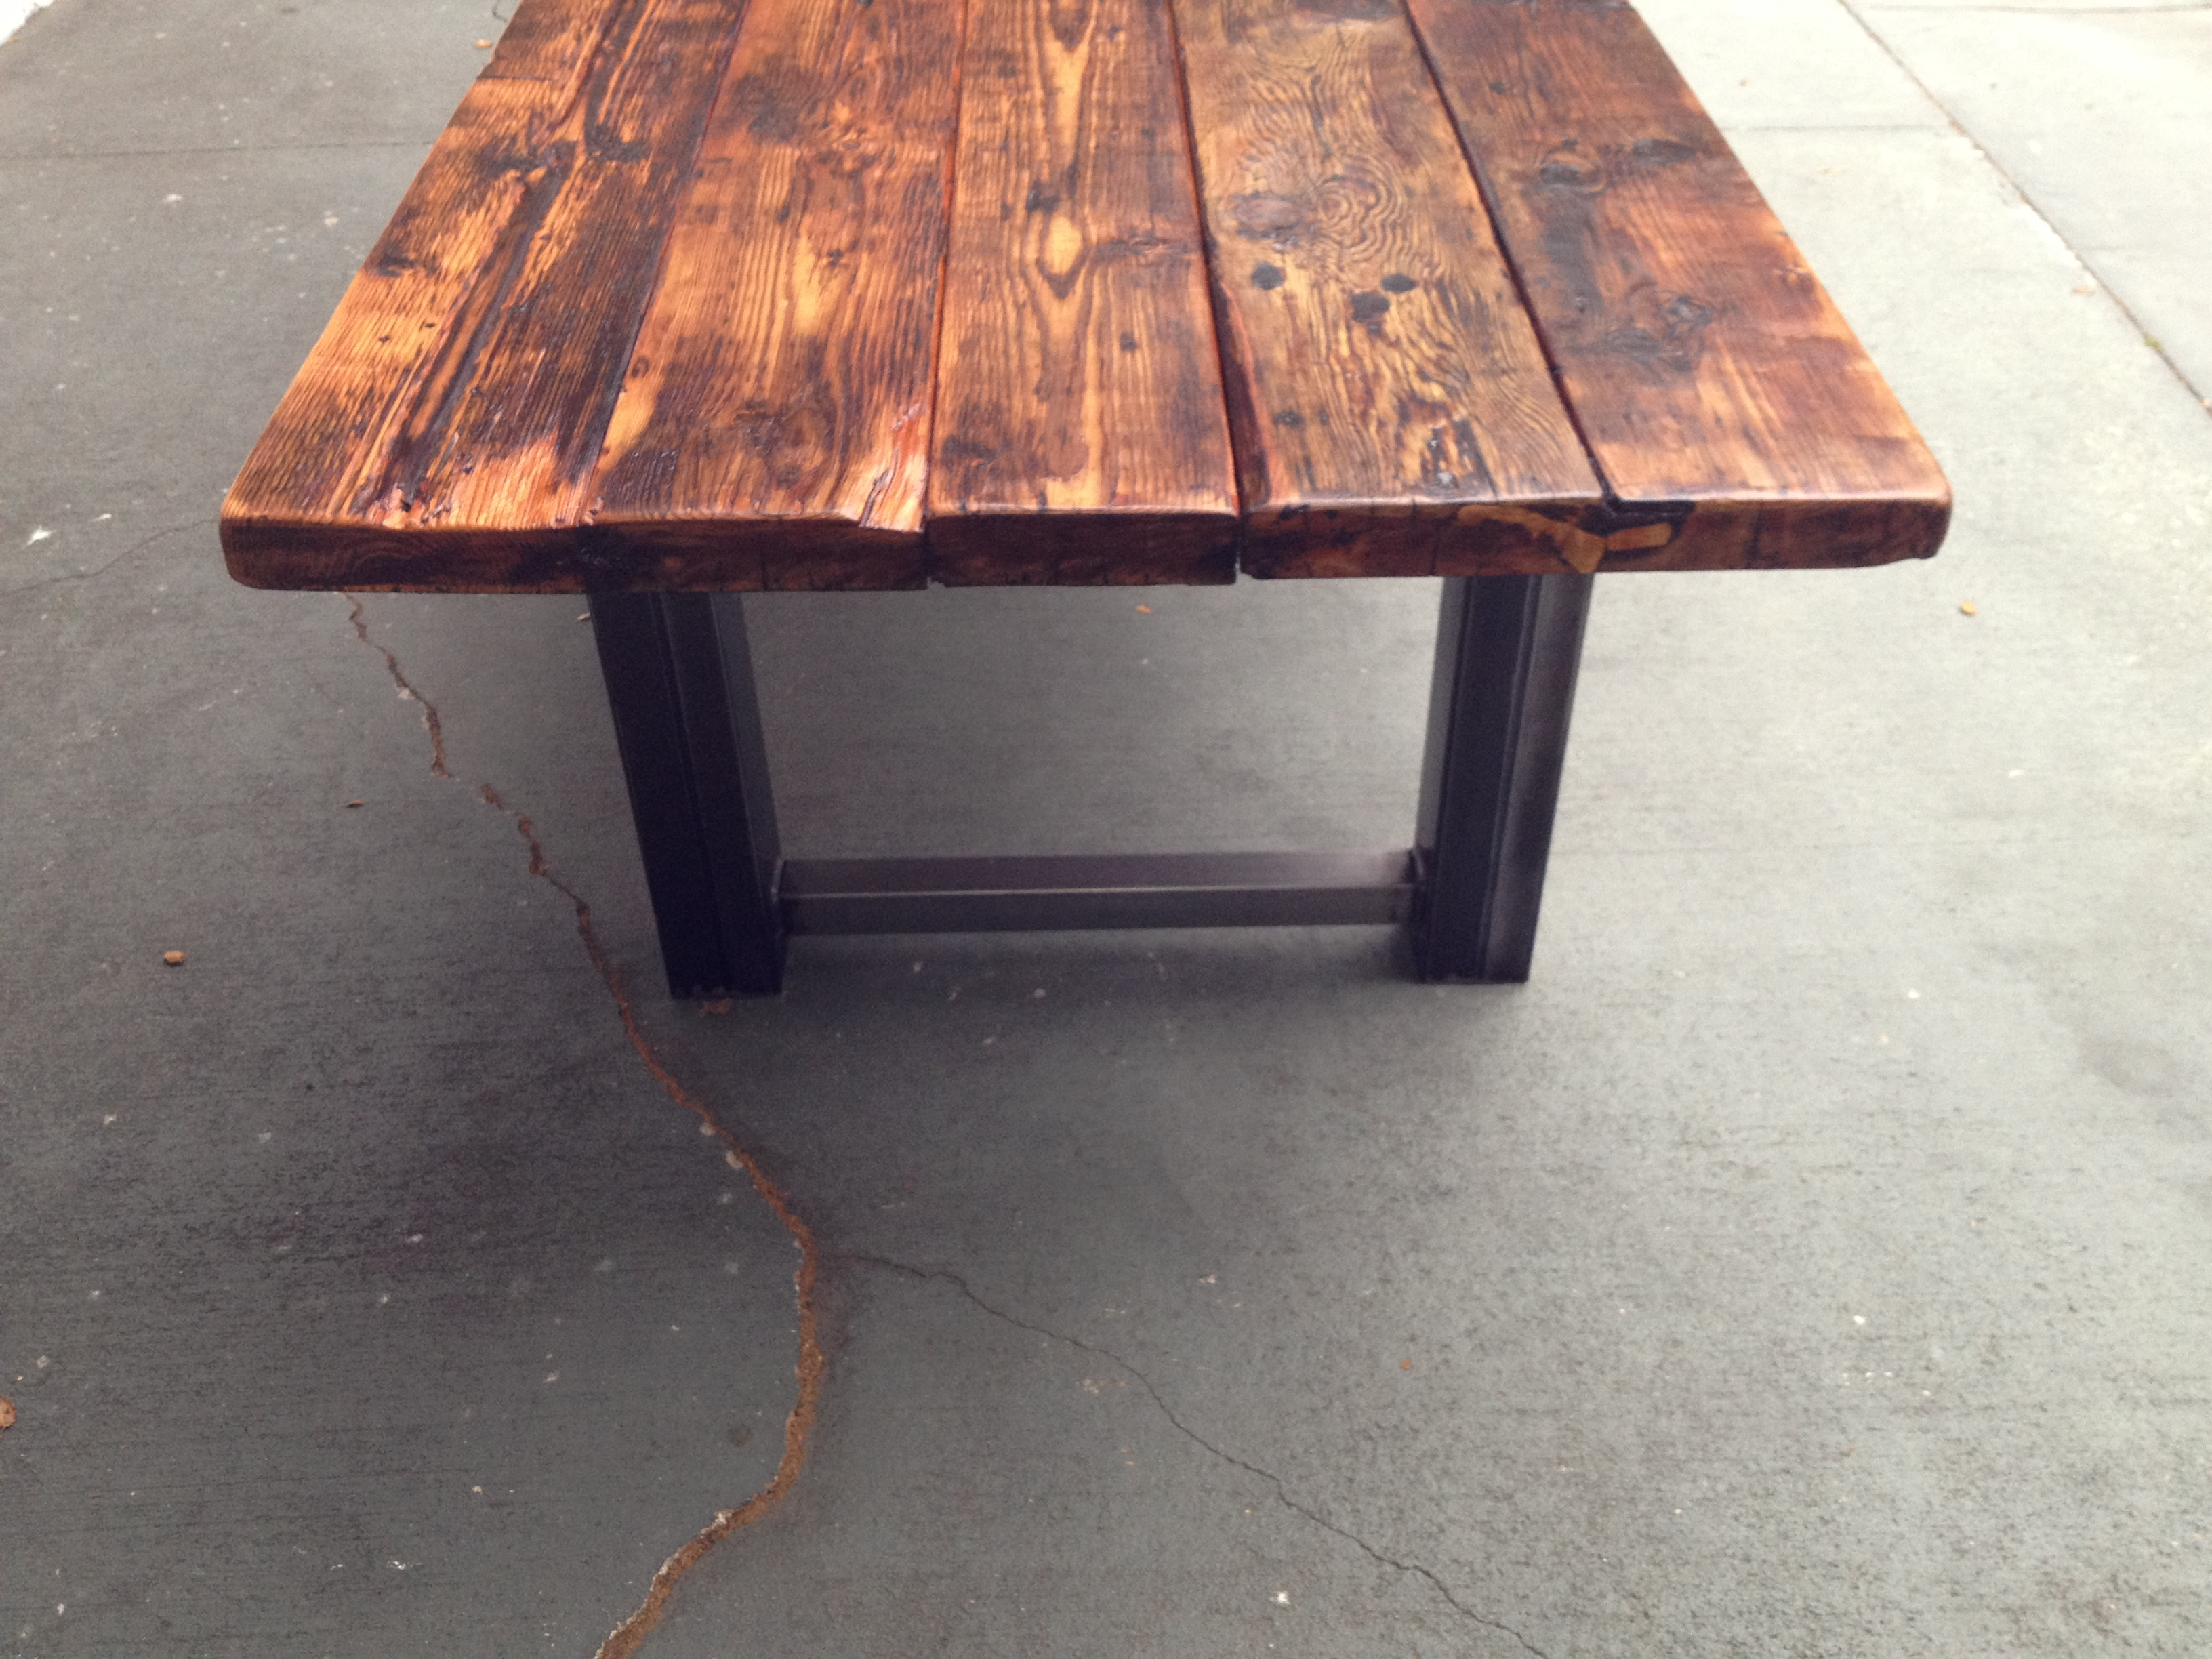 Rustic Wood Dining Table Plans Plans DIY How To Make Resolute93bgx